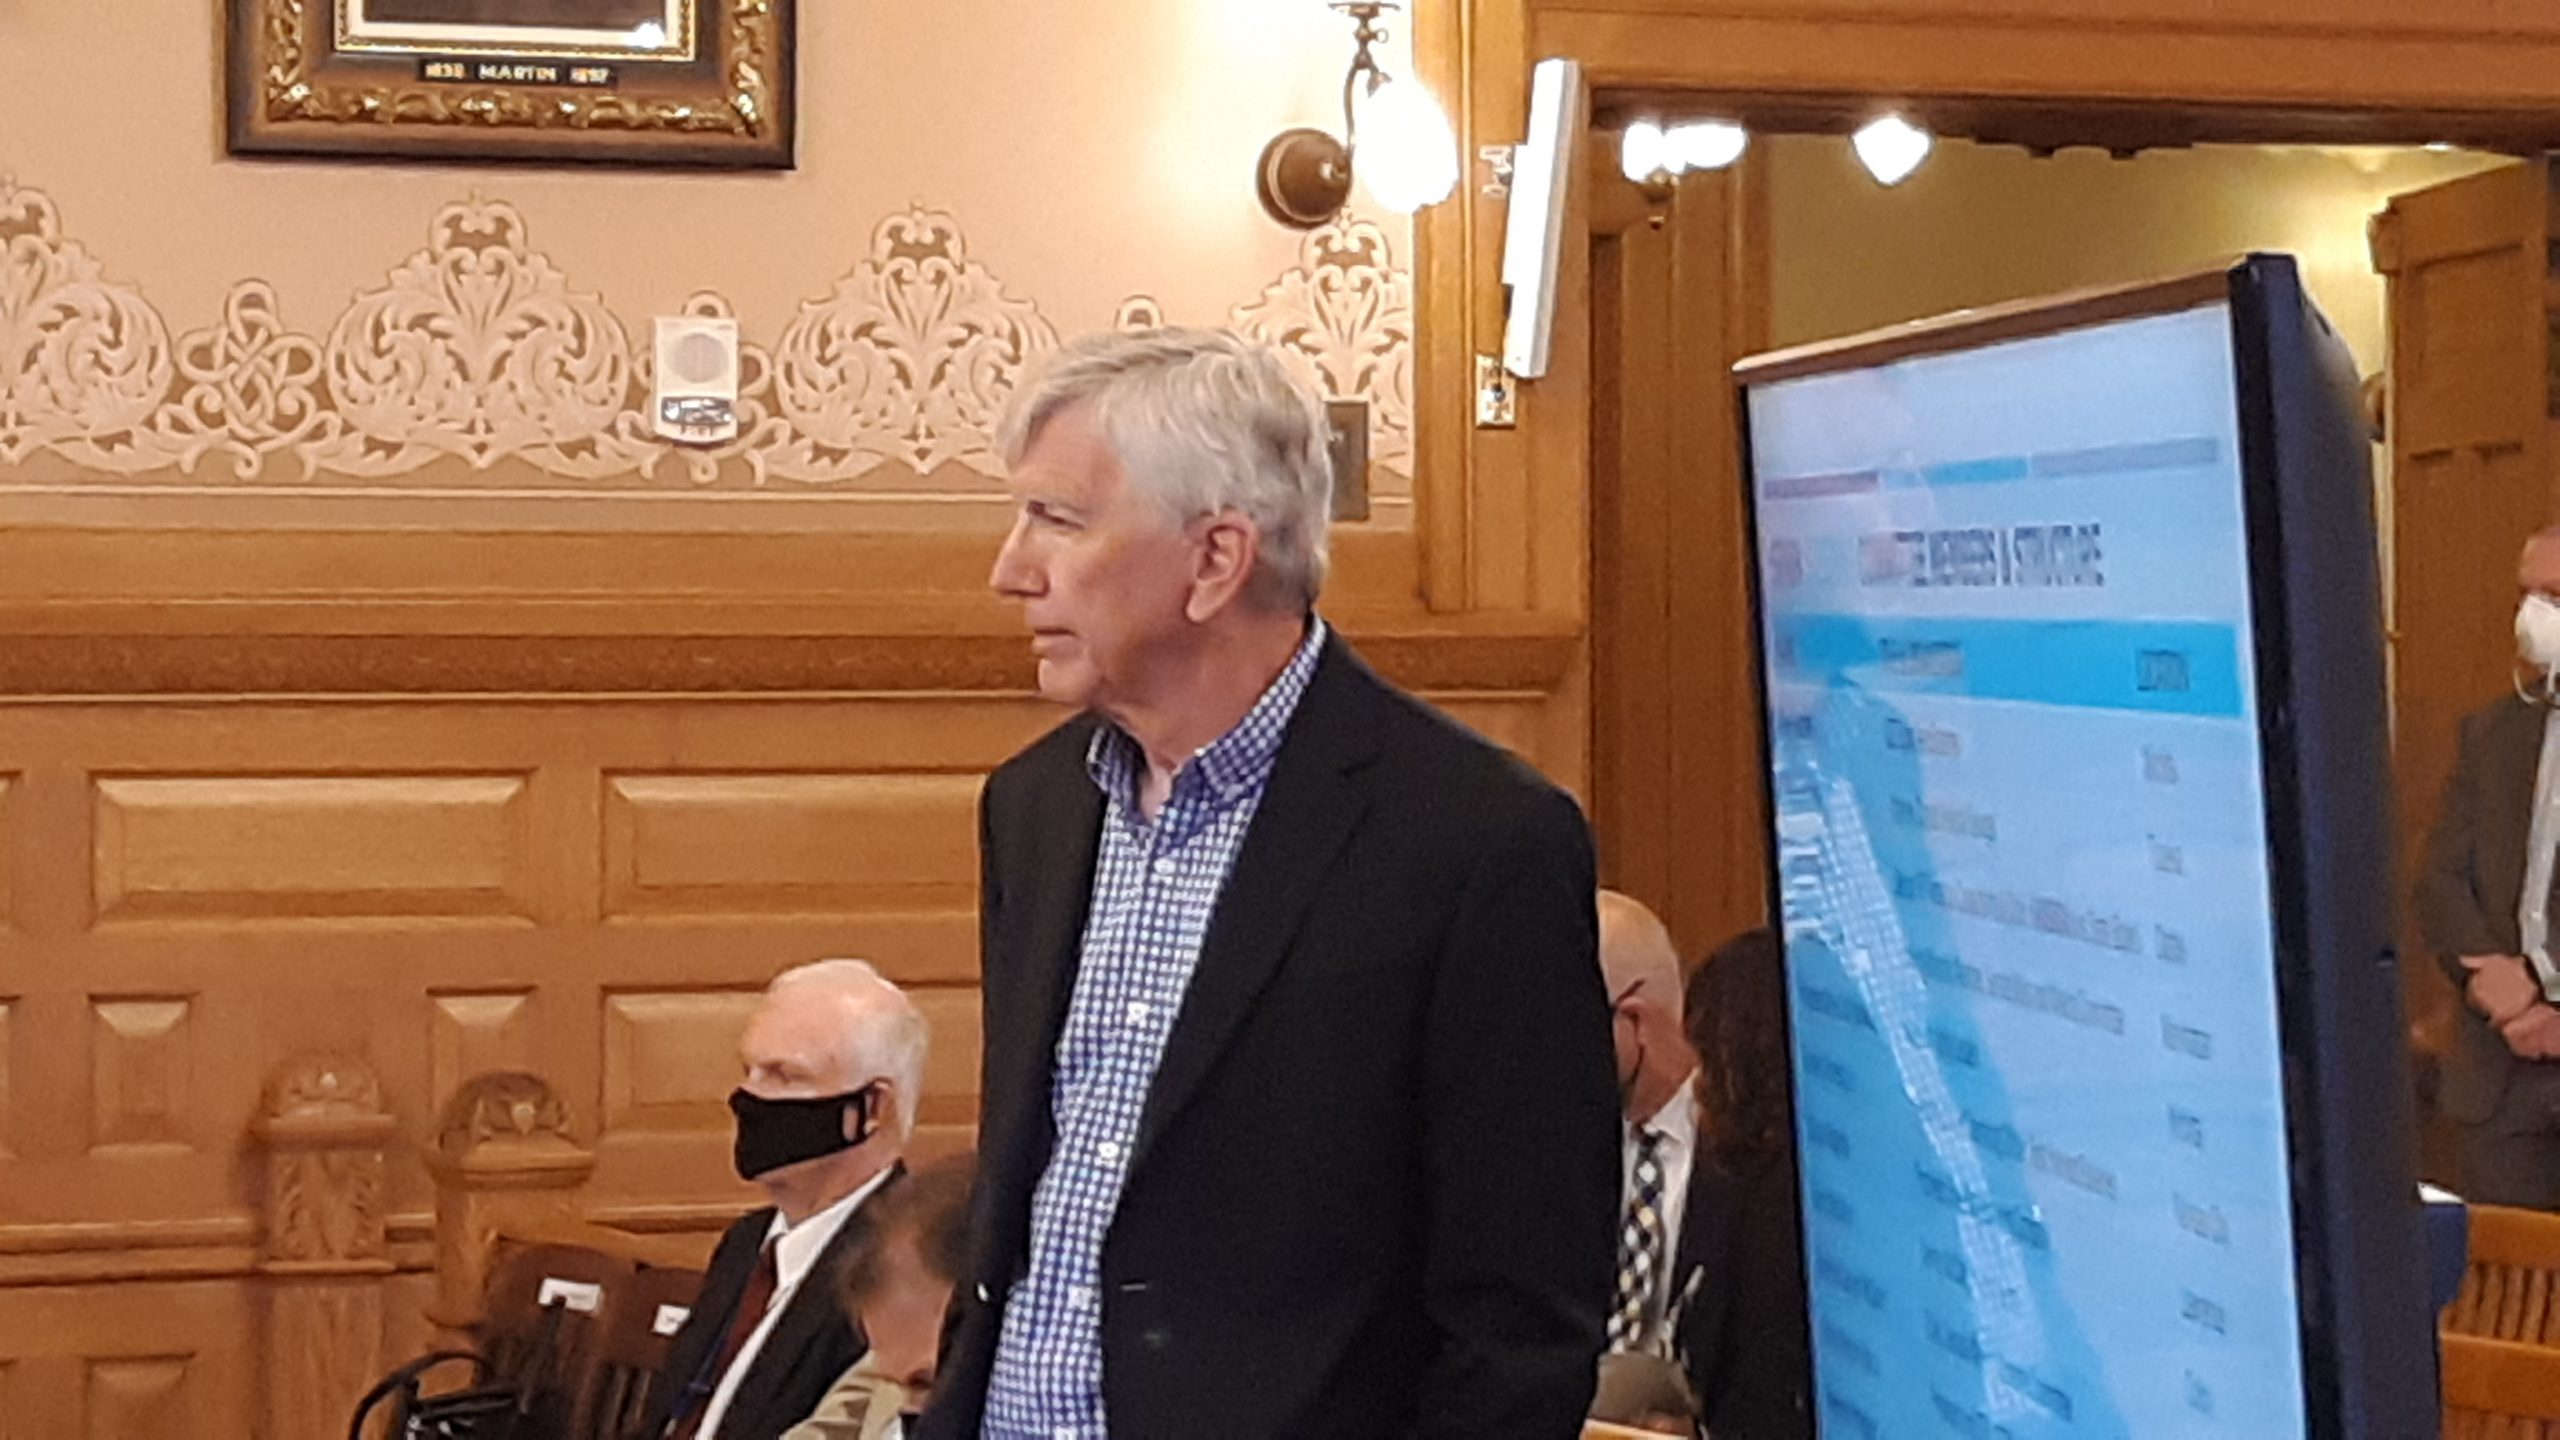 Lyle Butler, chairman of Gov. Laura Kelly's task force working with federal COVID-19 aid, said Kansas should have dramatically expanded testing statewide as far back as five months ago. (Tim Carpenter/Kansas Reflector)